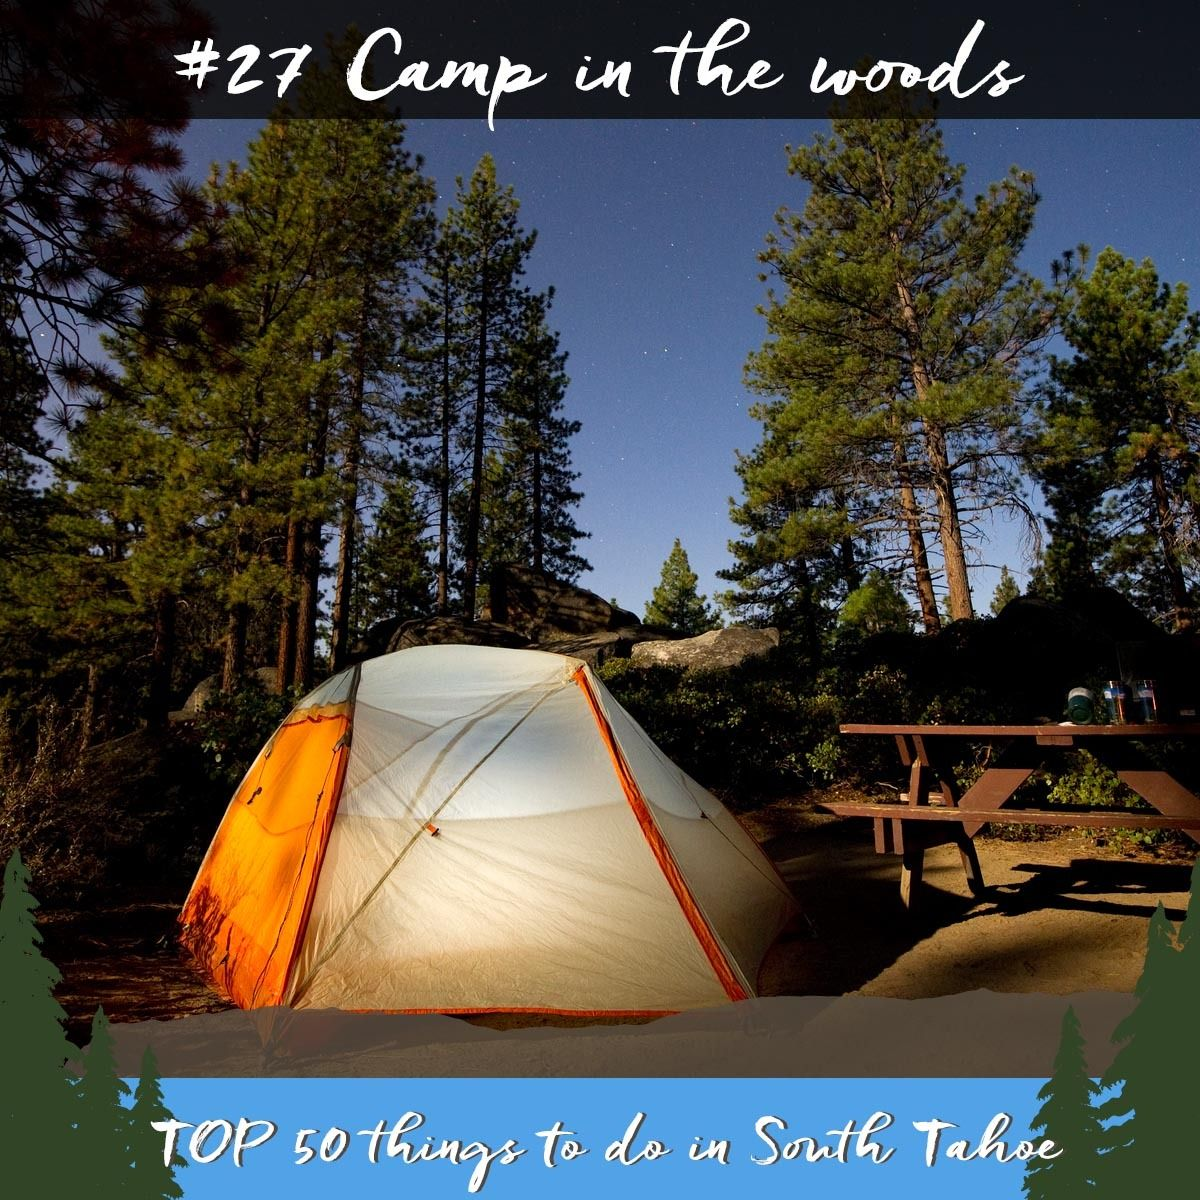 Are you an RV or a tent c&er? & 27 - enjoy a campout! Are you an RV or a tent camper? | 50 Things ...